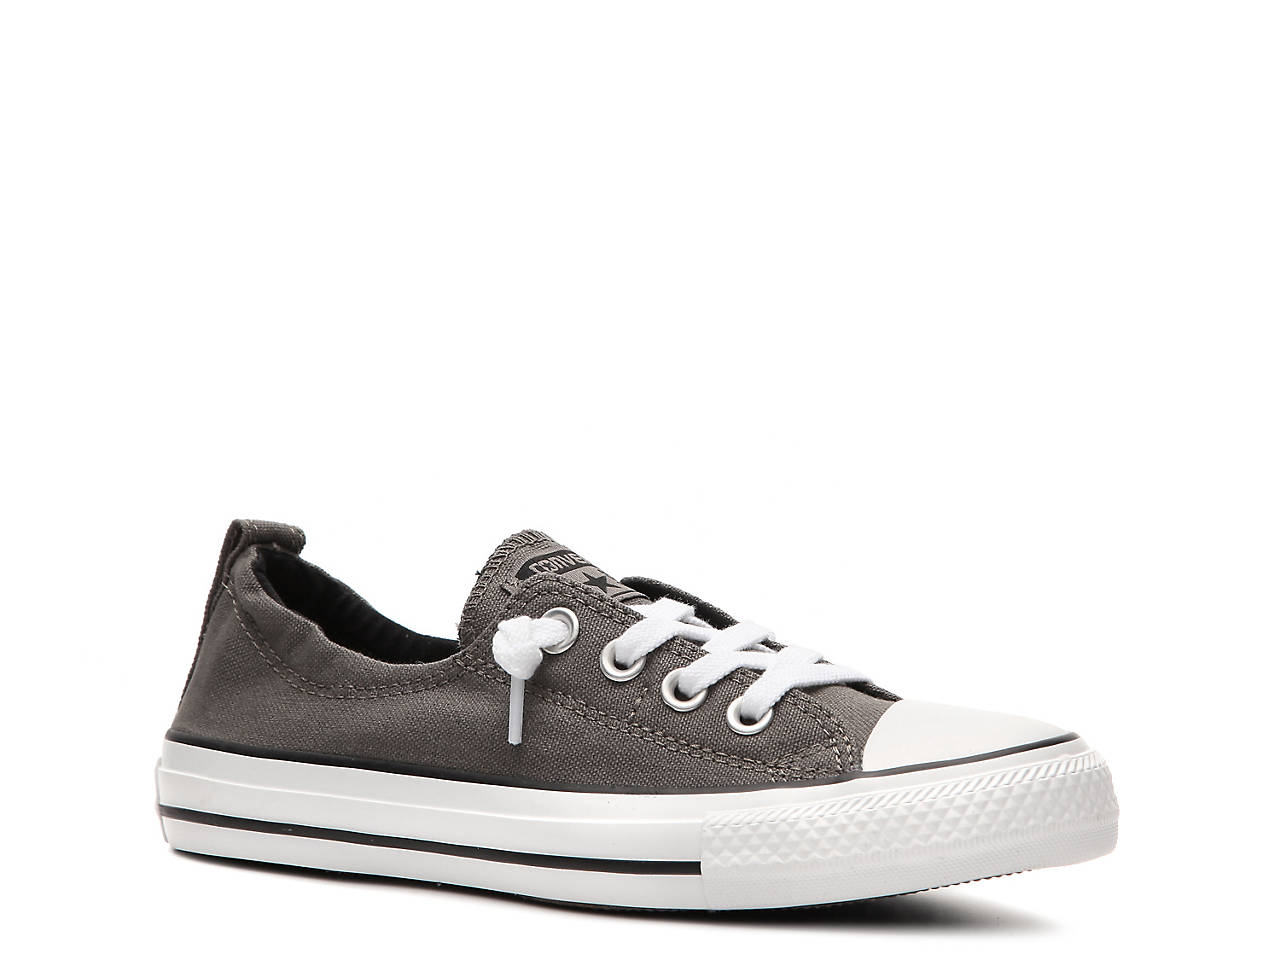 Women's Shoreline Sneakers